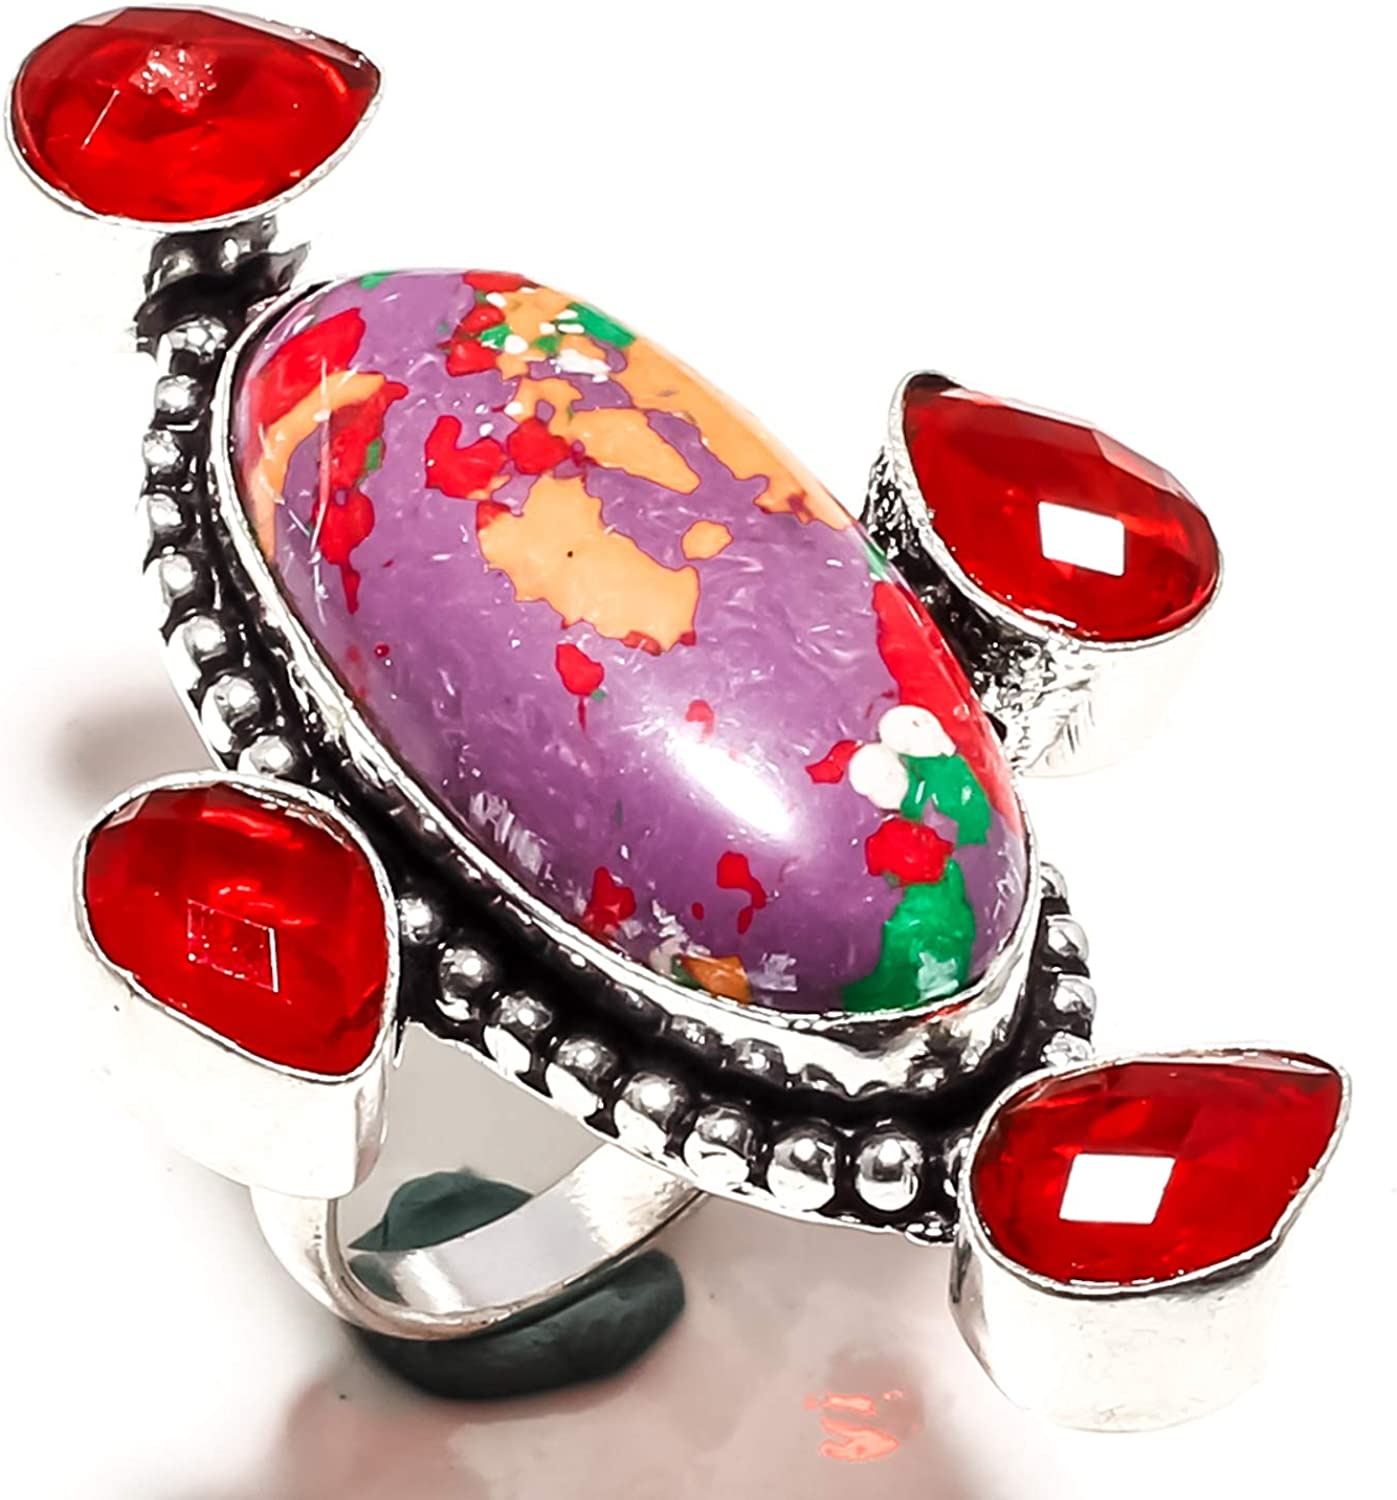 - 7 US Ring Size SF-1908 jewelsworld Pretty Purple Mosaic Jasper /& Red Garnet Gemstone Ring Handmade 925 Sterling Silver Plated Jewelry -Statement Ring - -